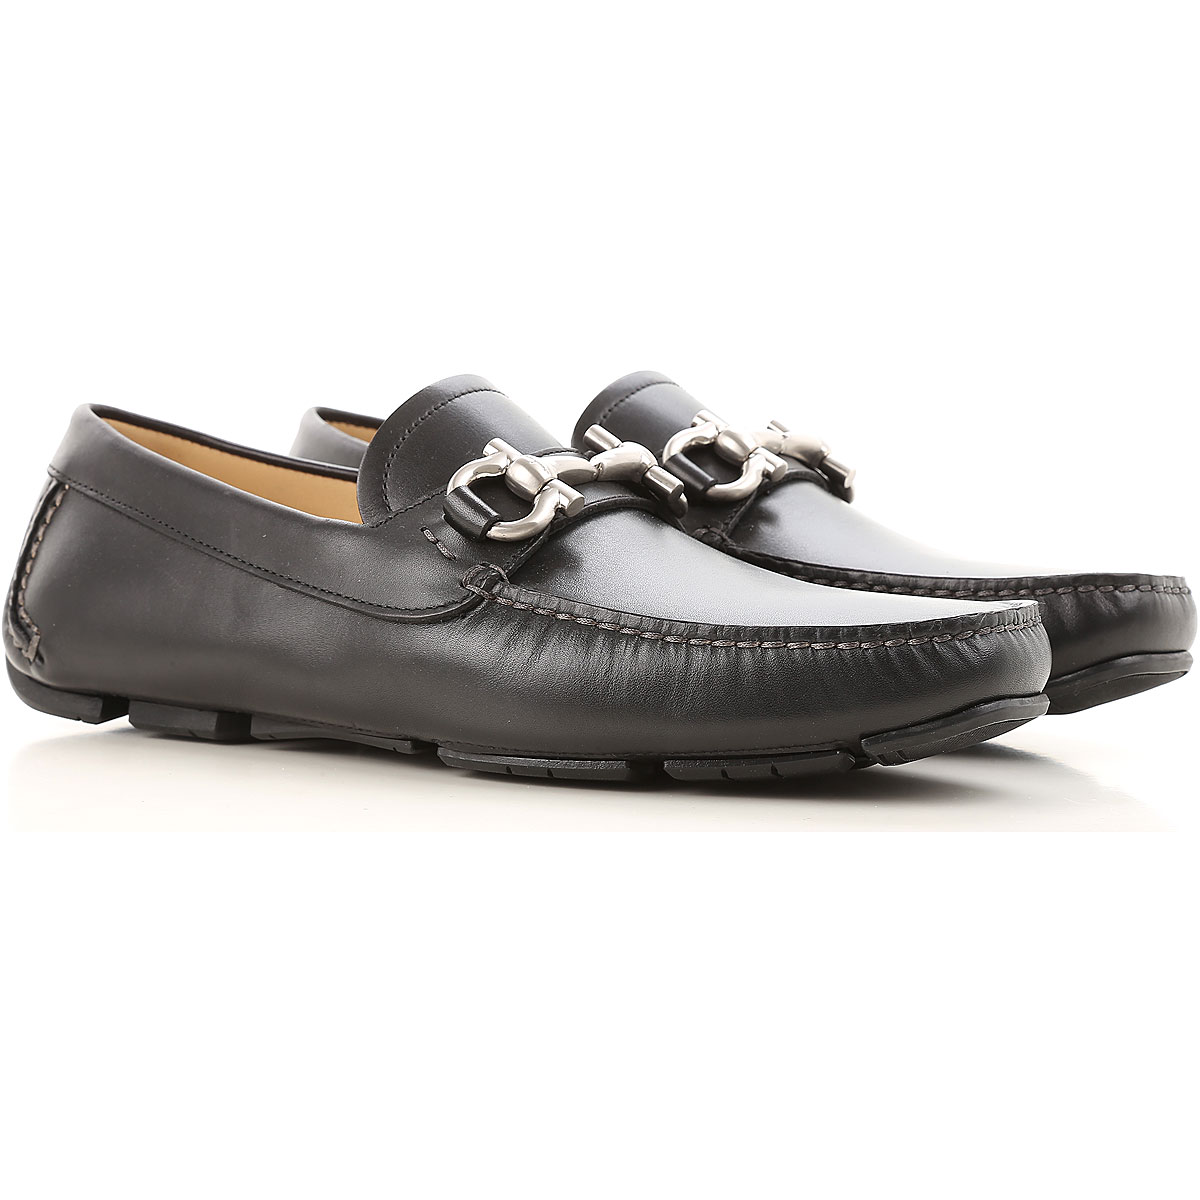 Image of Salvatore Ferragamo Driver Loafer Shoes for Men On Sale, Black, Leather, 2017, 6 6.5 7 8.5